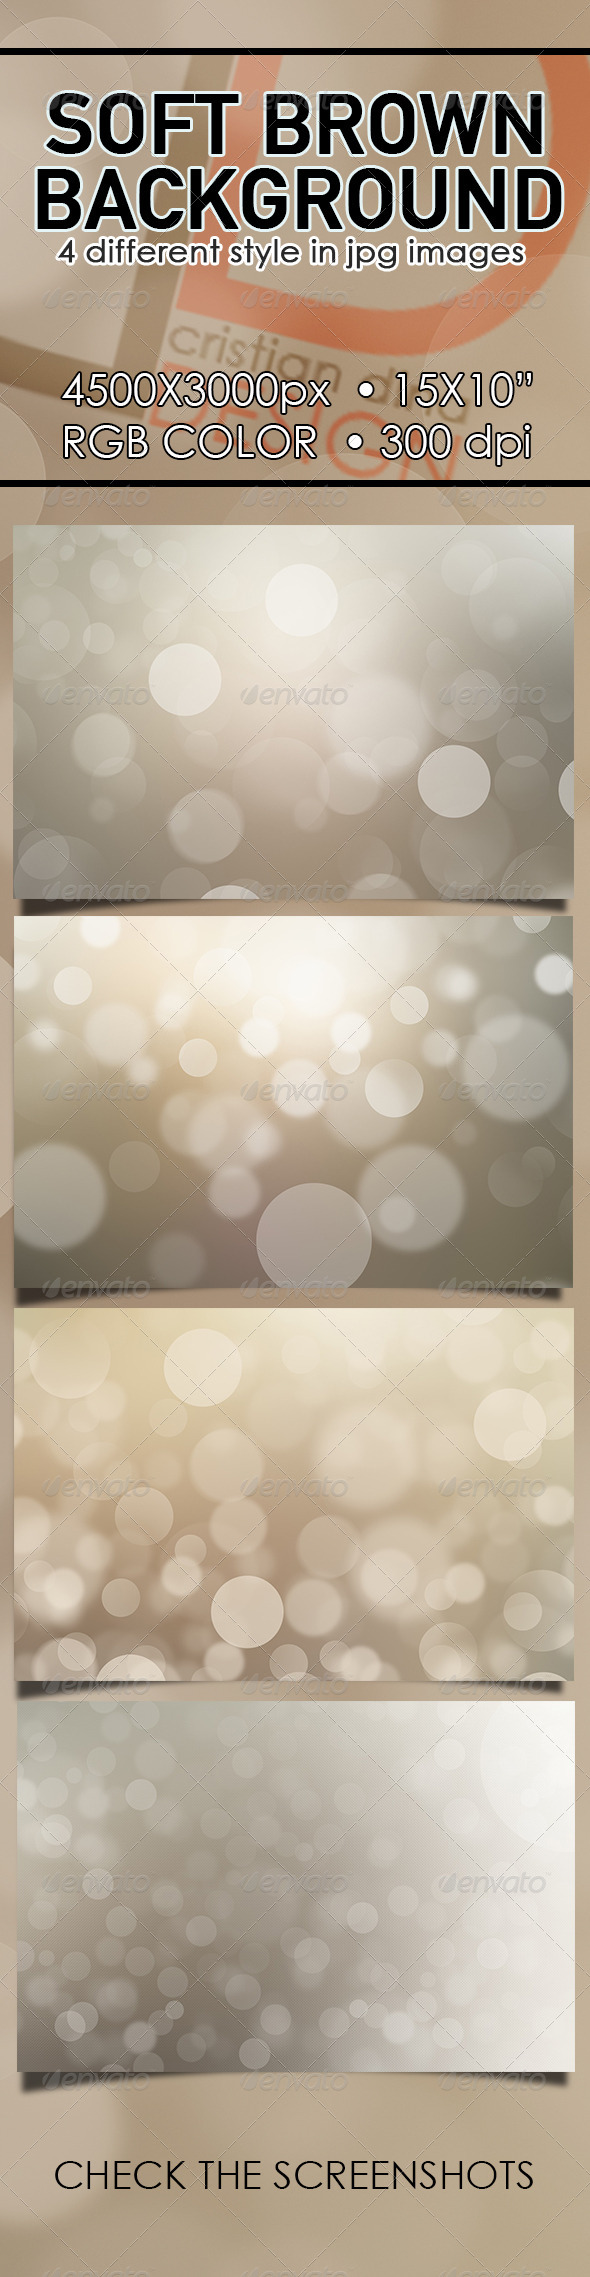 GraphicRiver Soft Brown Background 6642463